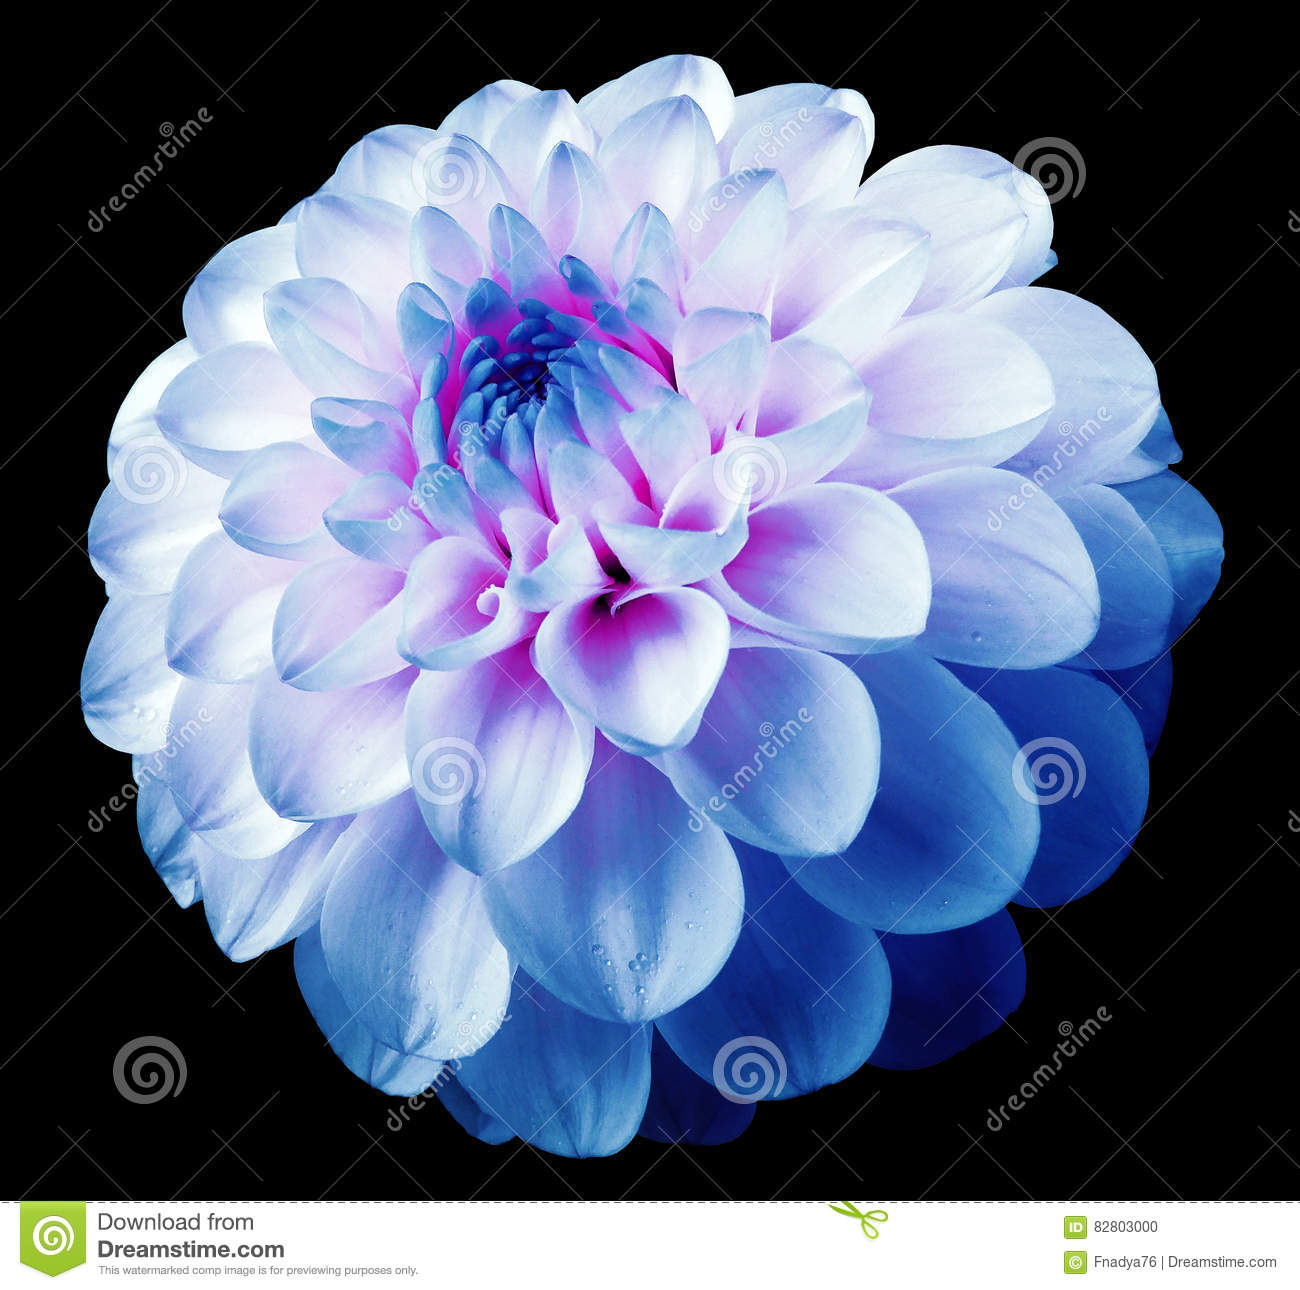 Flower White Blue Dahlia Black Isolated Background With Clipping